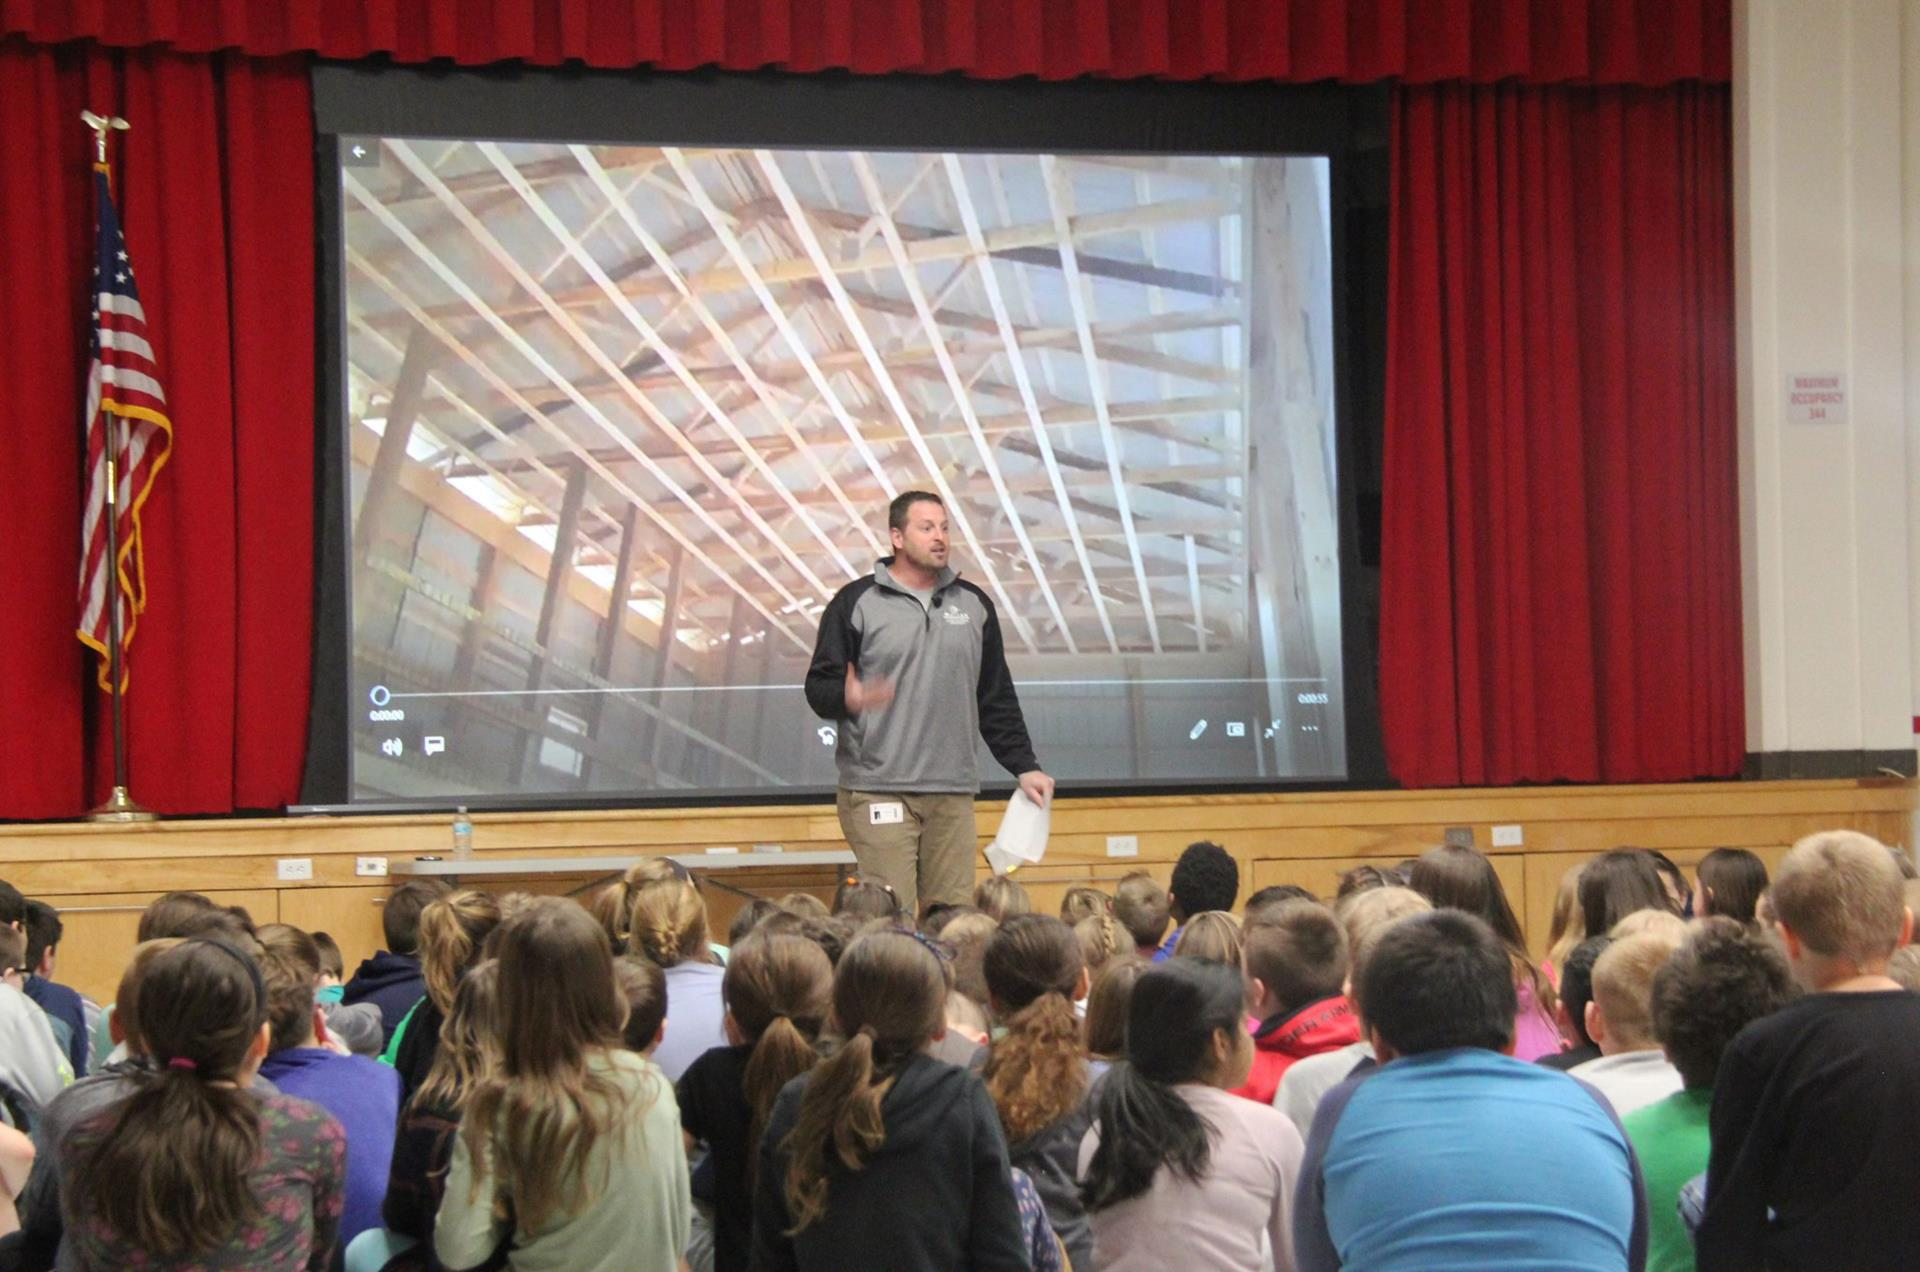 Animal Adventure owner speaking with students